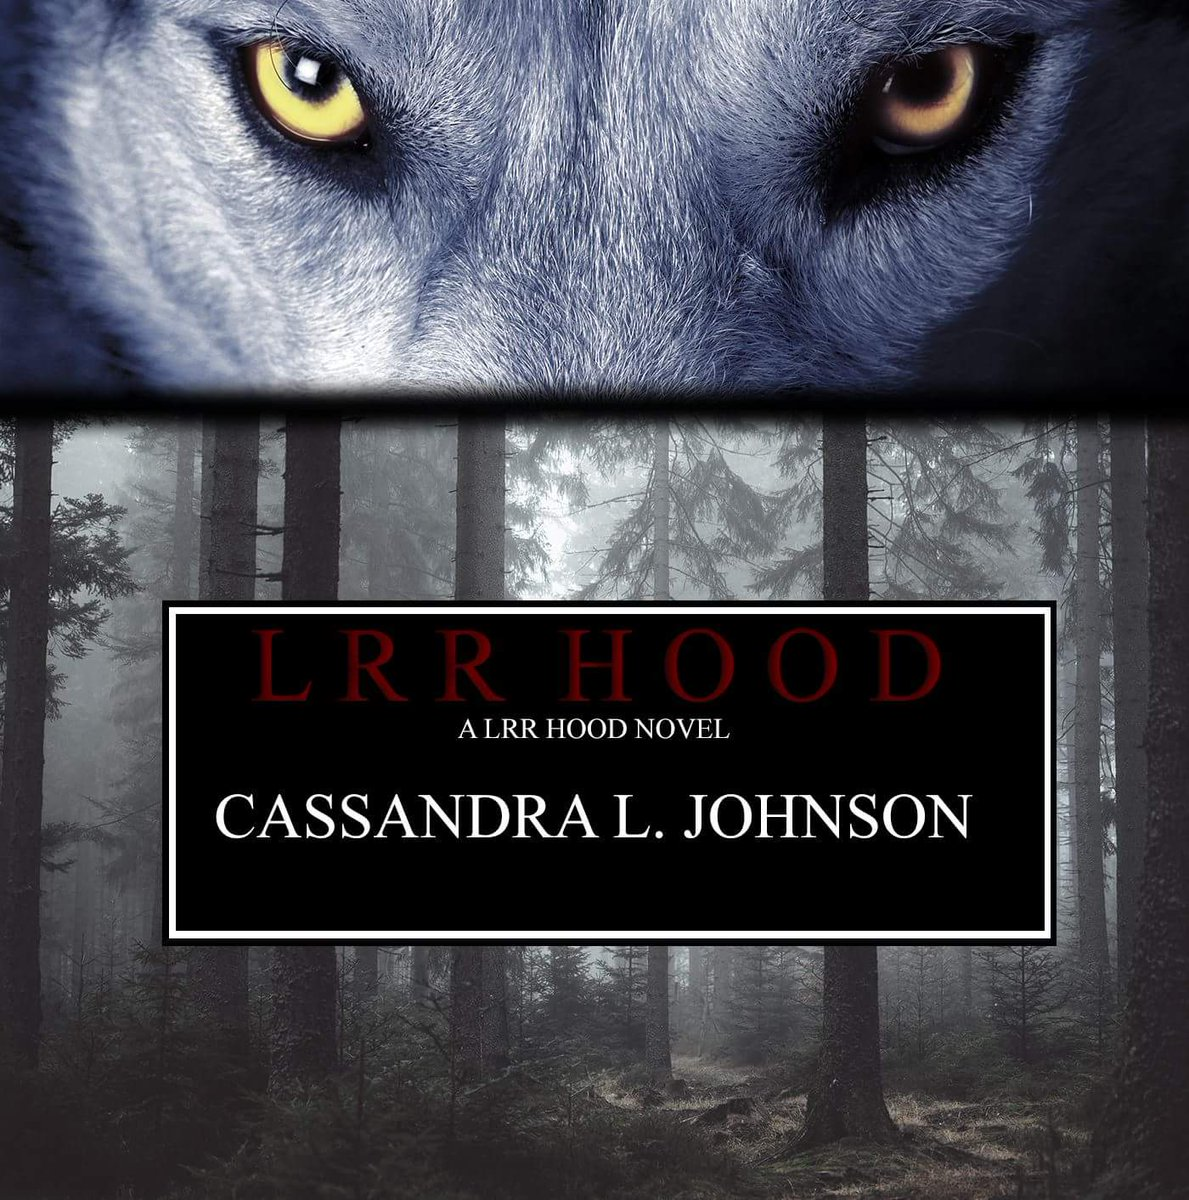 Hey everyone, @AuthorCLJ here! While you&#39;re cruising the inter web don&#39;t forget to check out LRR Hood avaliable on Amazon  https:// tinyurl.com/ydz5k6uf  &nbsp;   #thriller #werewolf #mustread #readinglist<br>http://pic.twitter.com/gmeUwPMPfk